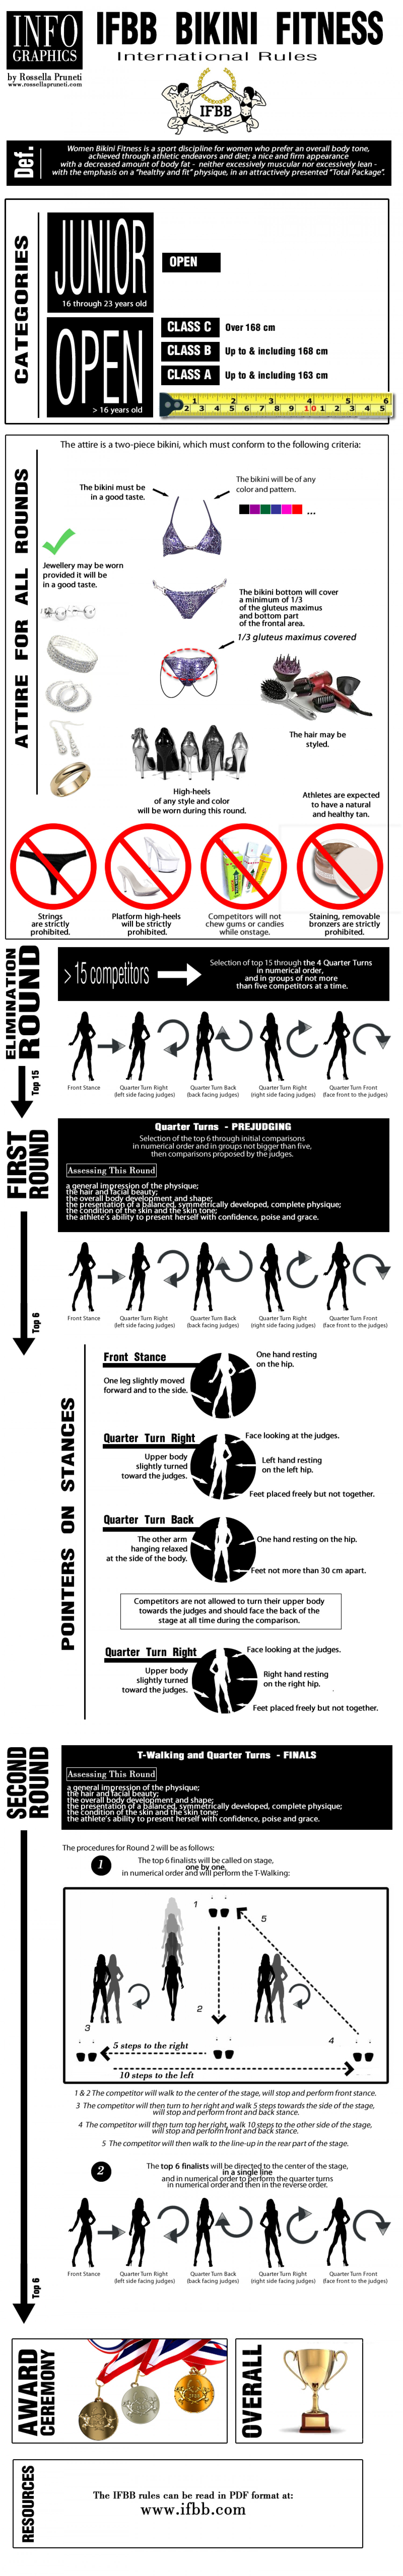 IFBB Bikini Fitness - International Rules (as of July 2013) Infographic